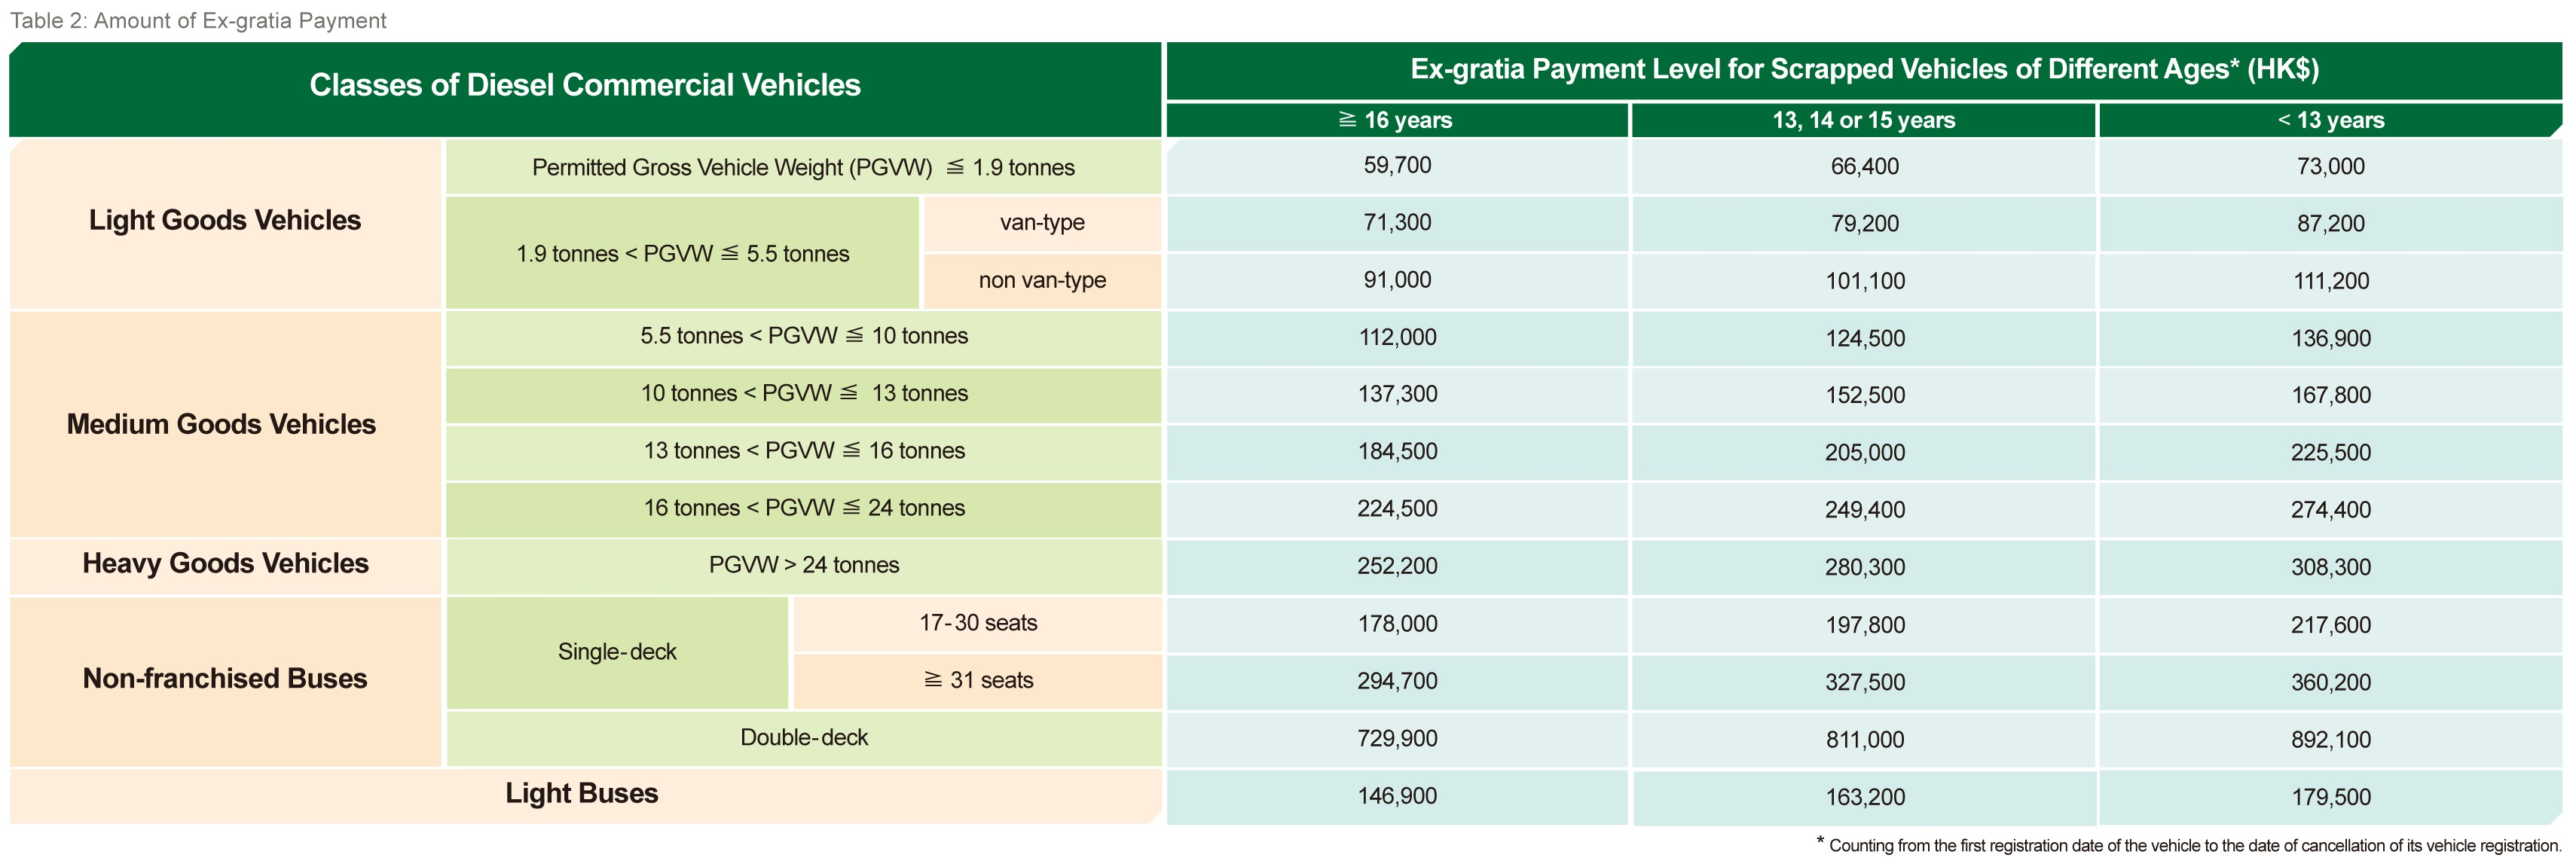 Table 2.  Amount of Ex-gratia Payment